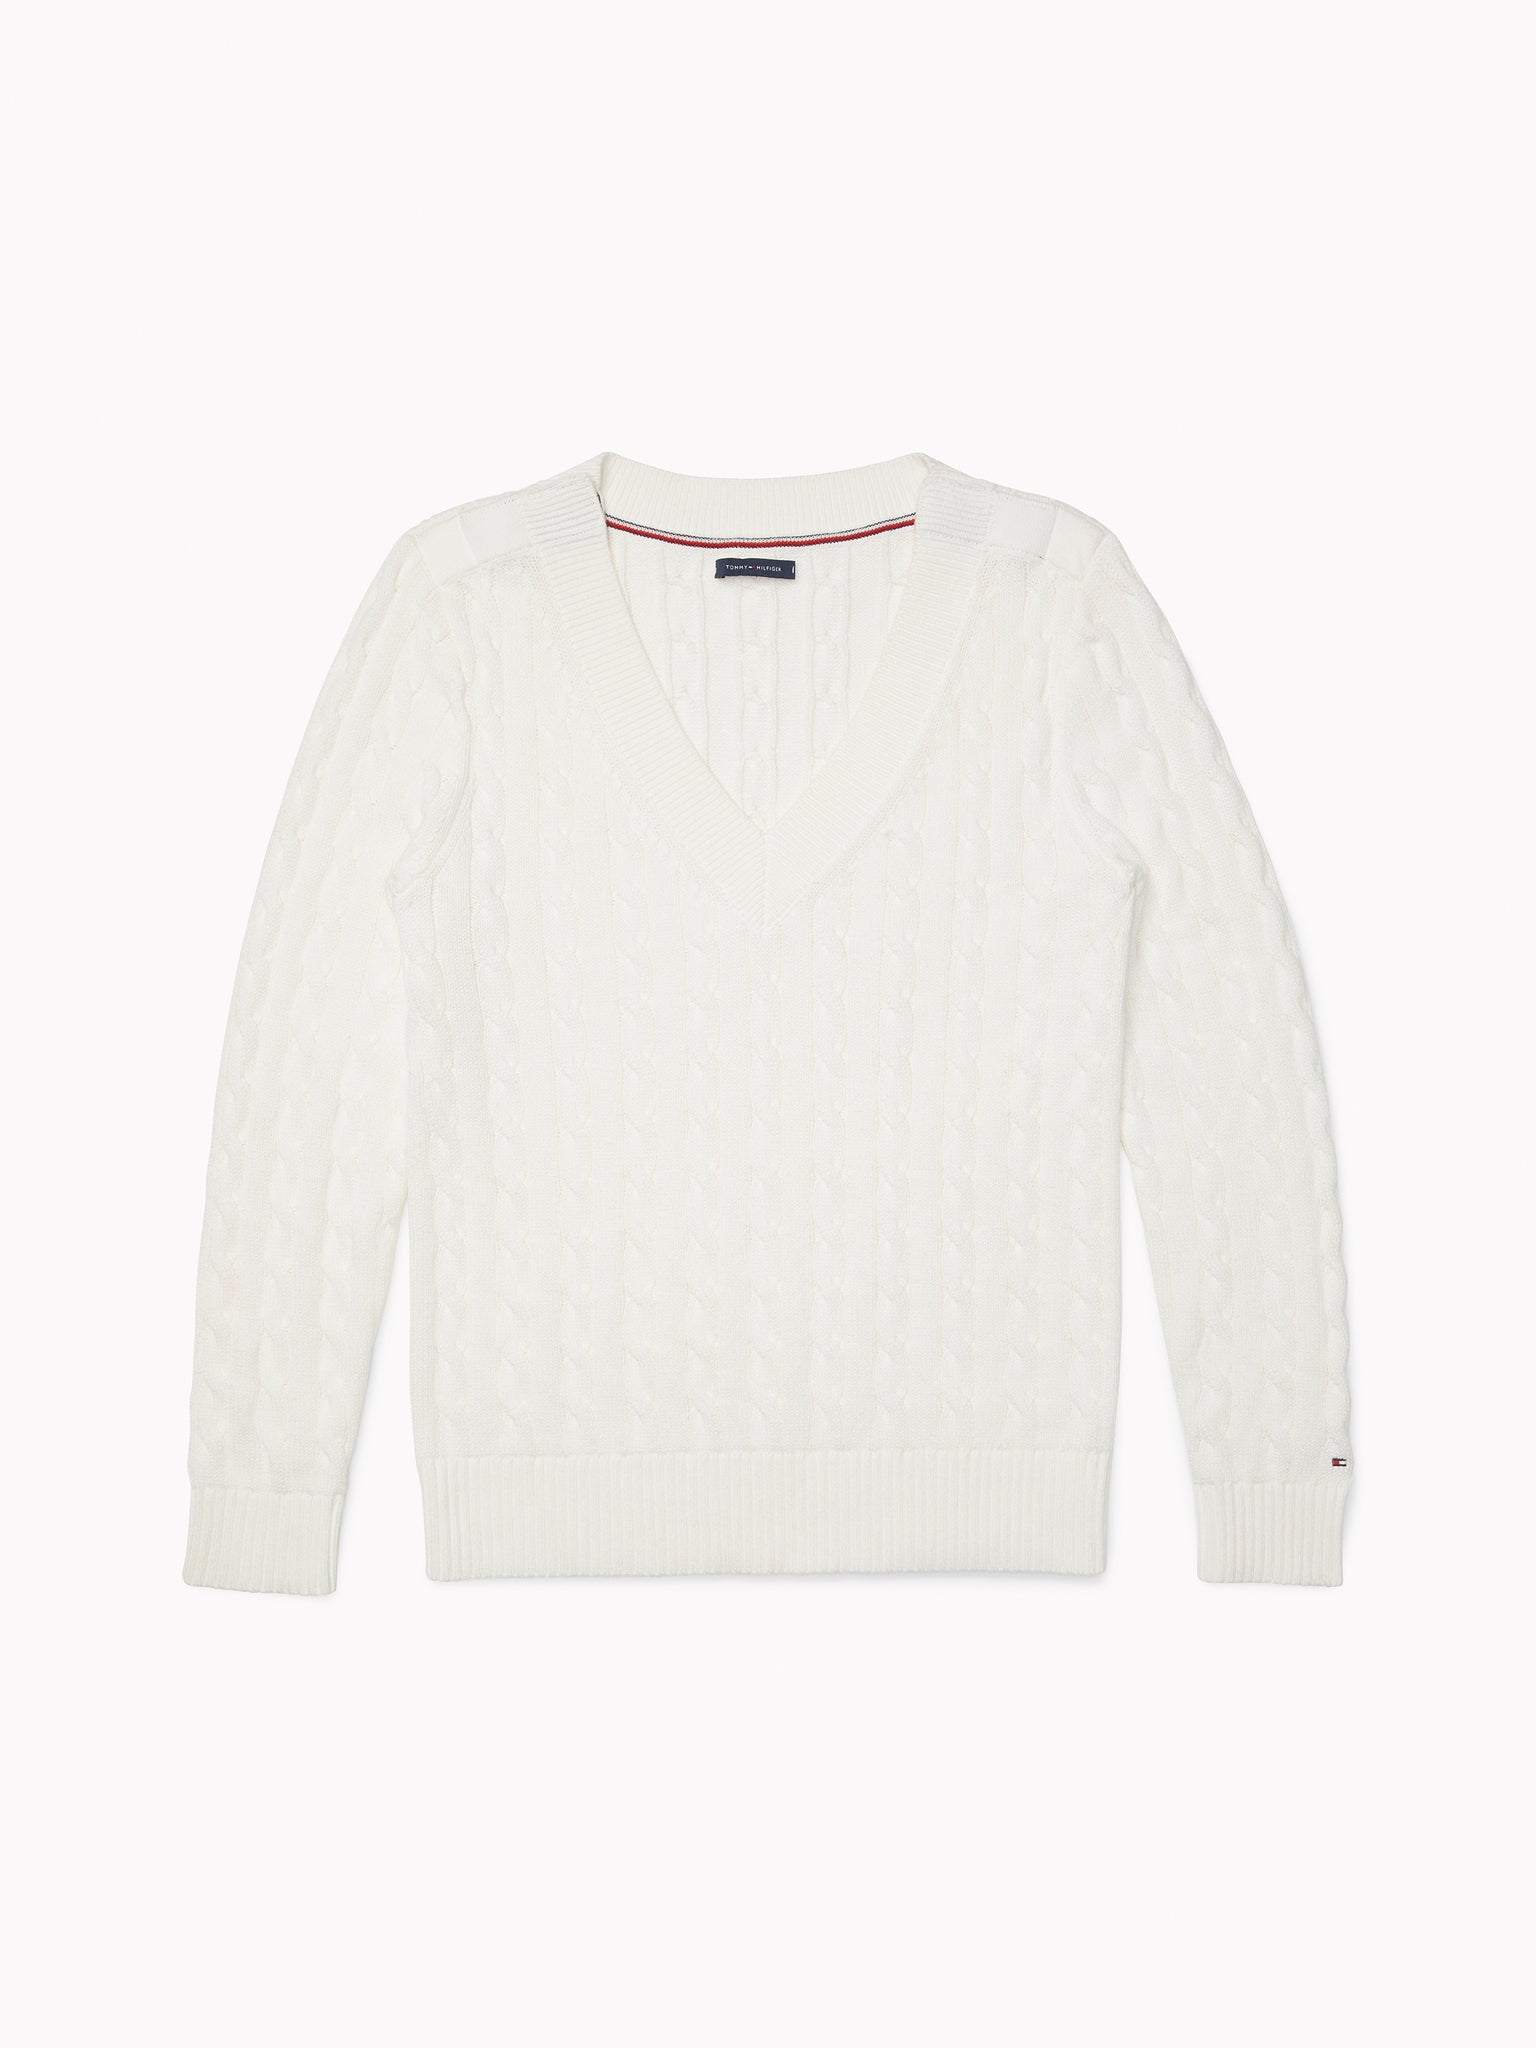 Tommy Cable Sweater - White